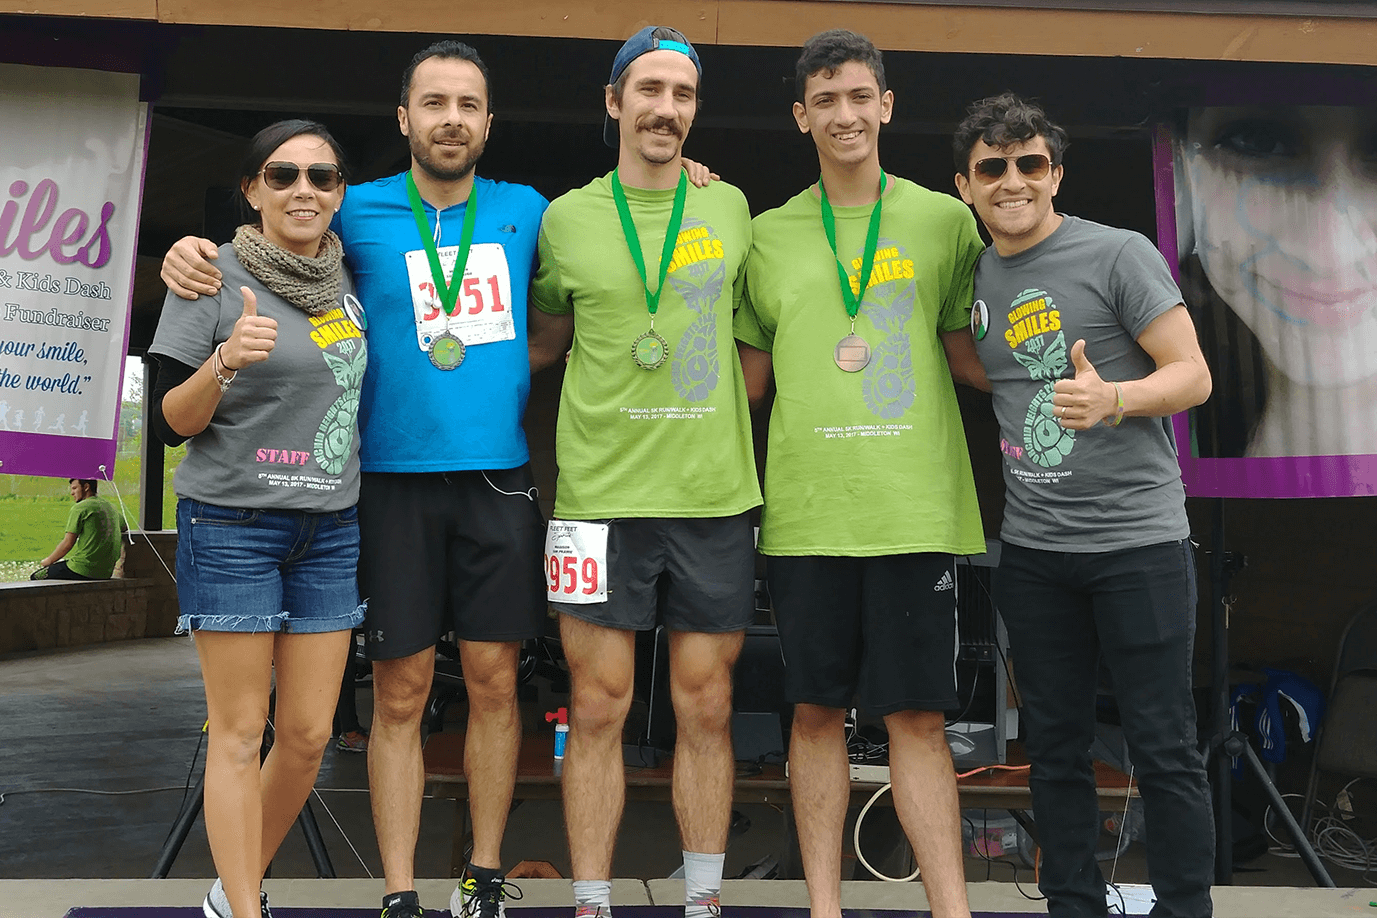 2016 Male winners from left to right: Coni Vergara Duhr, Juan Carlos Espinoza (3rd place), Hugo Moreno (1st place), Eliseo Santiago (2rd place) and Juan Vergara.